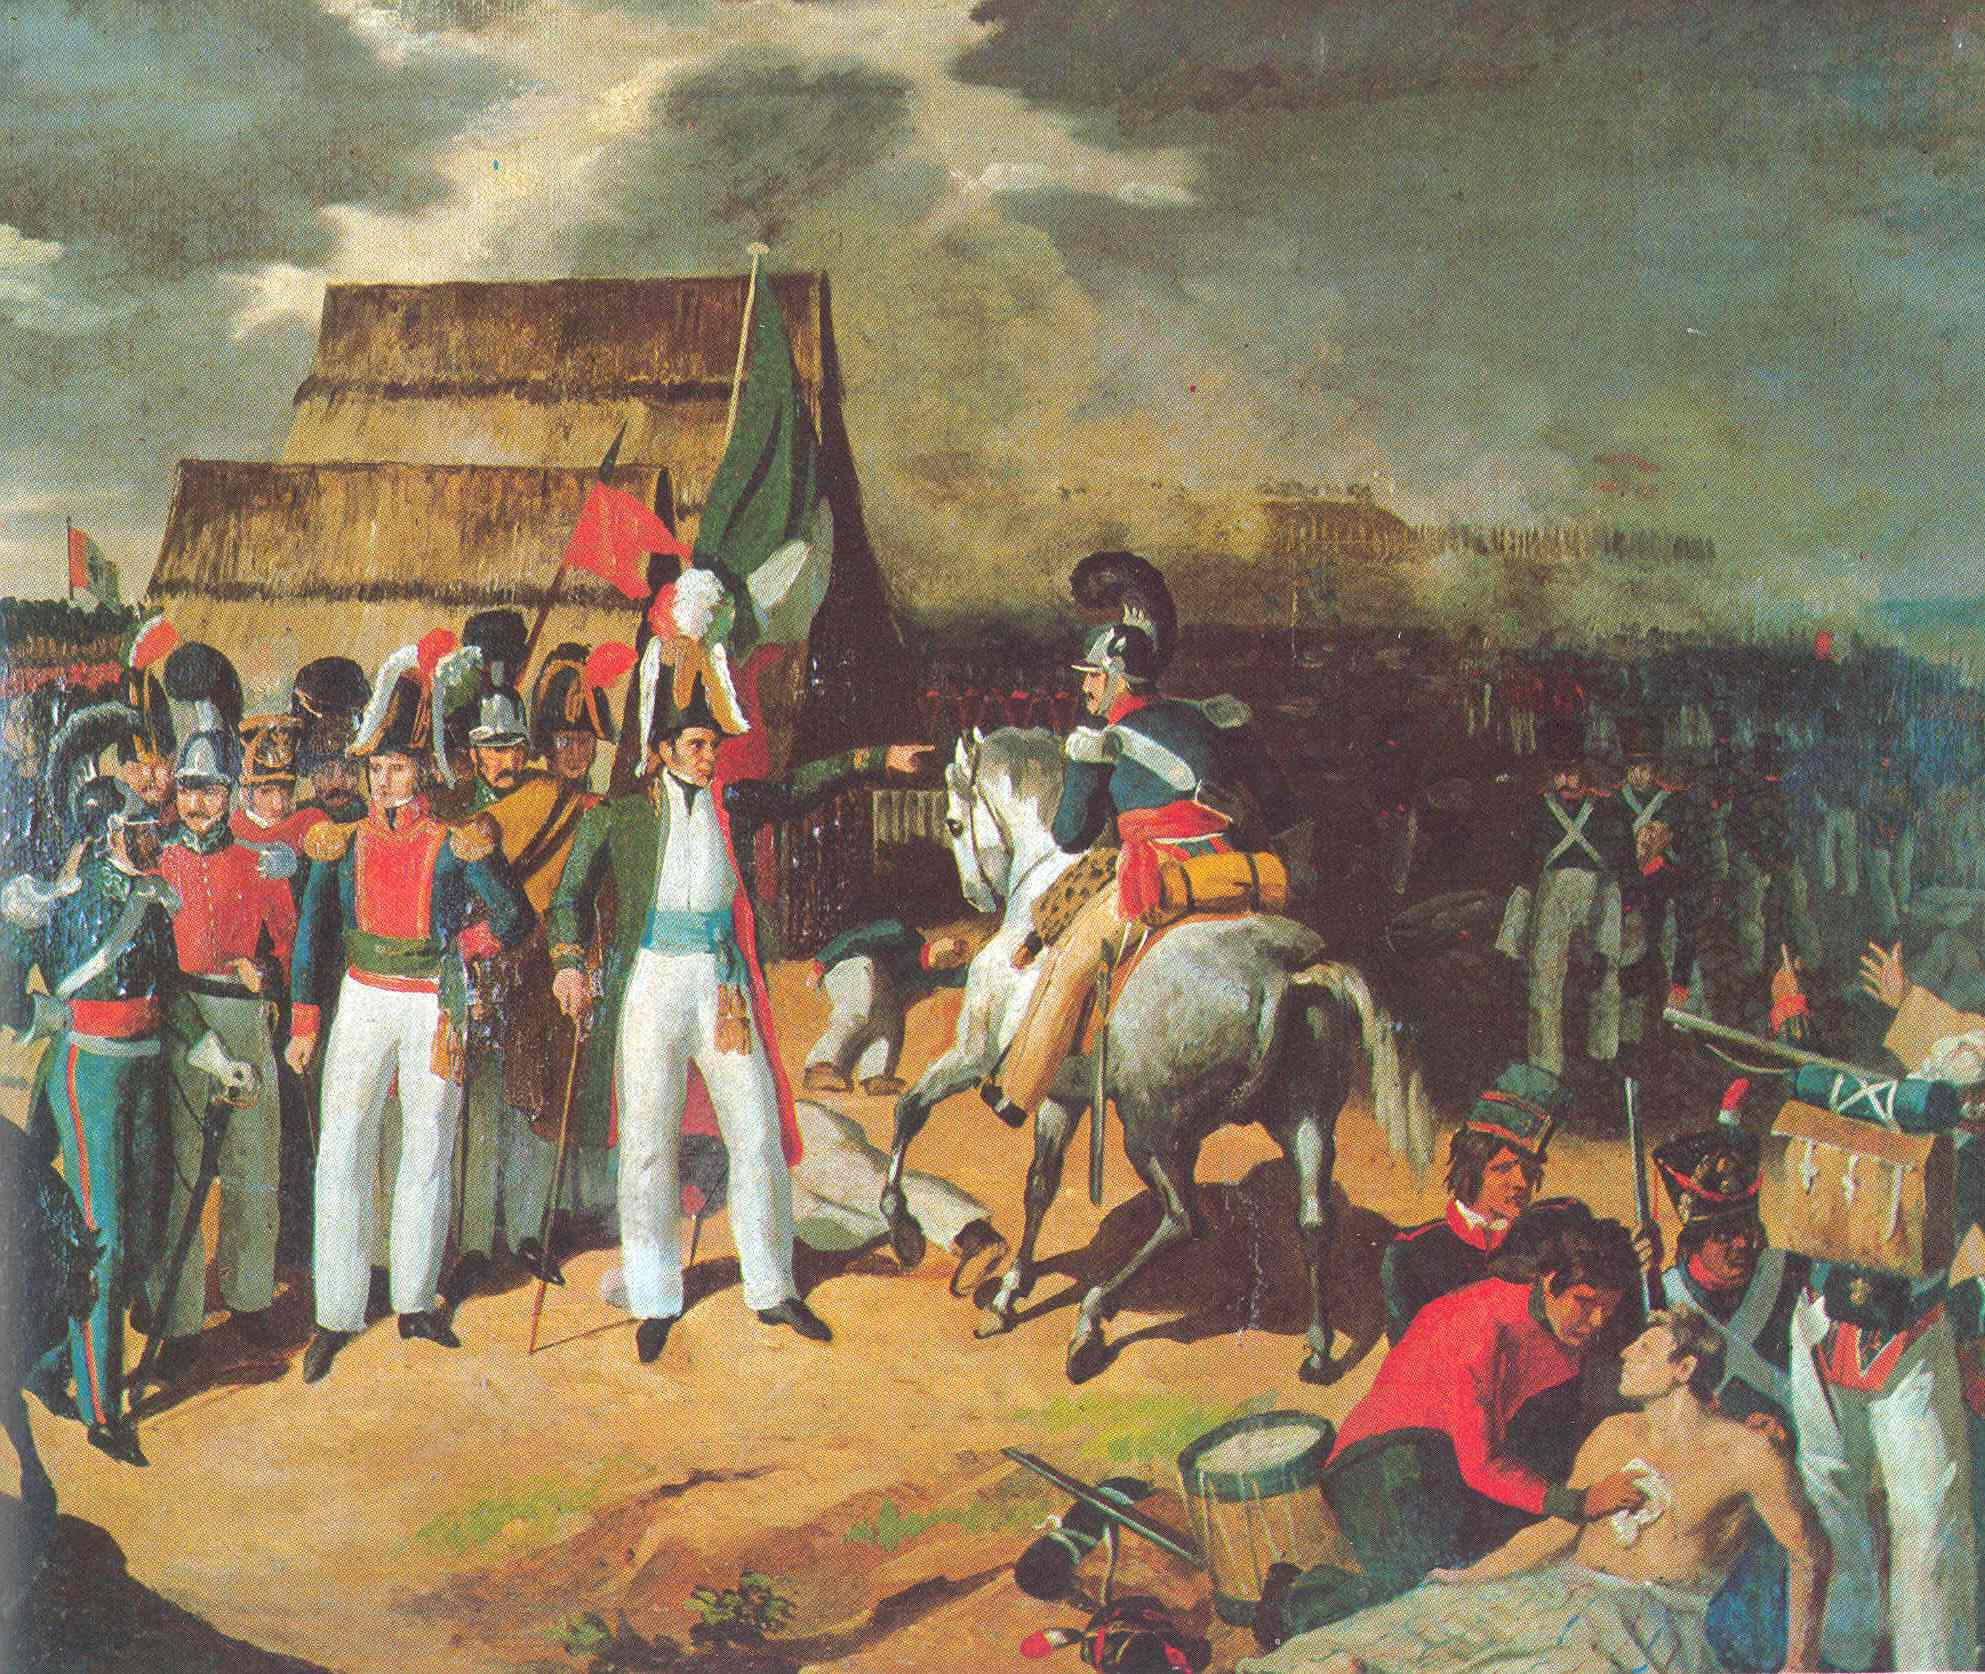 a history of mexicos independence from spain Mexican independence in new spain  ngo 1 thao ngo mrs franco ap us history 19 october 2014 independence from great britain in 1763.